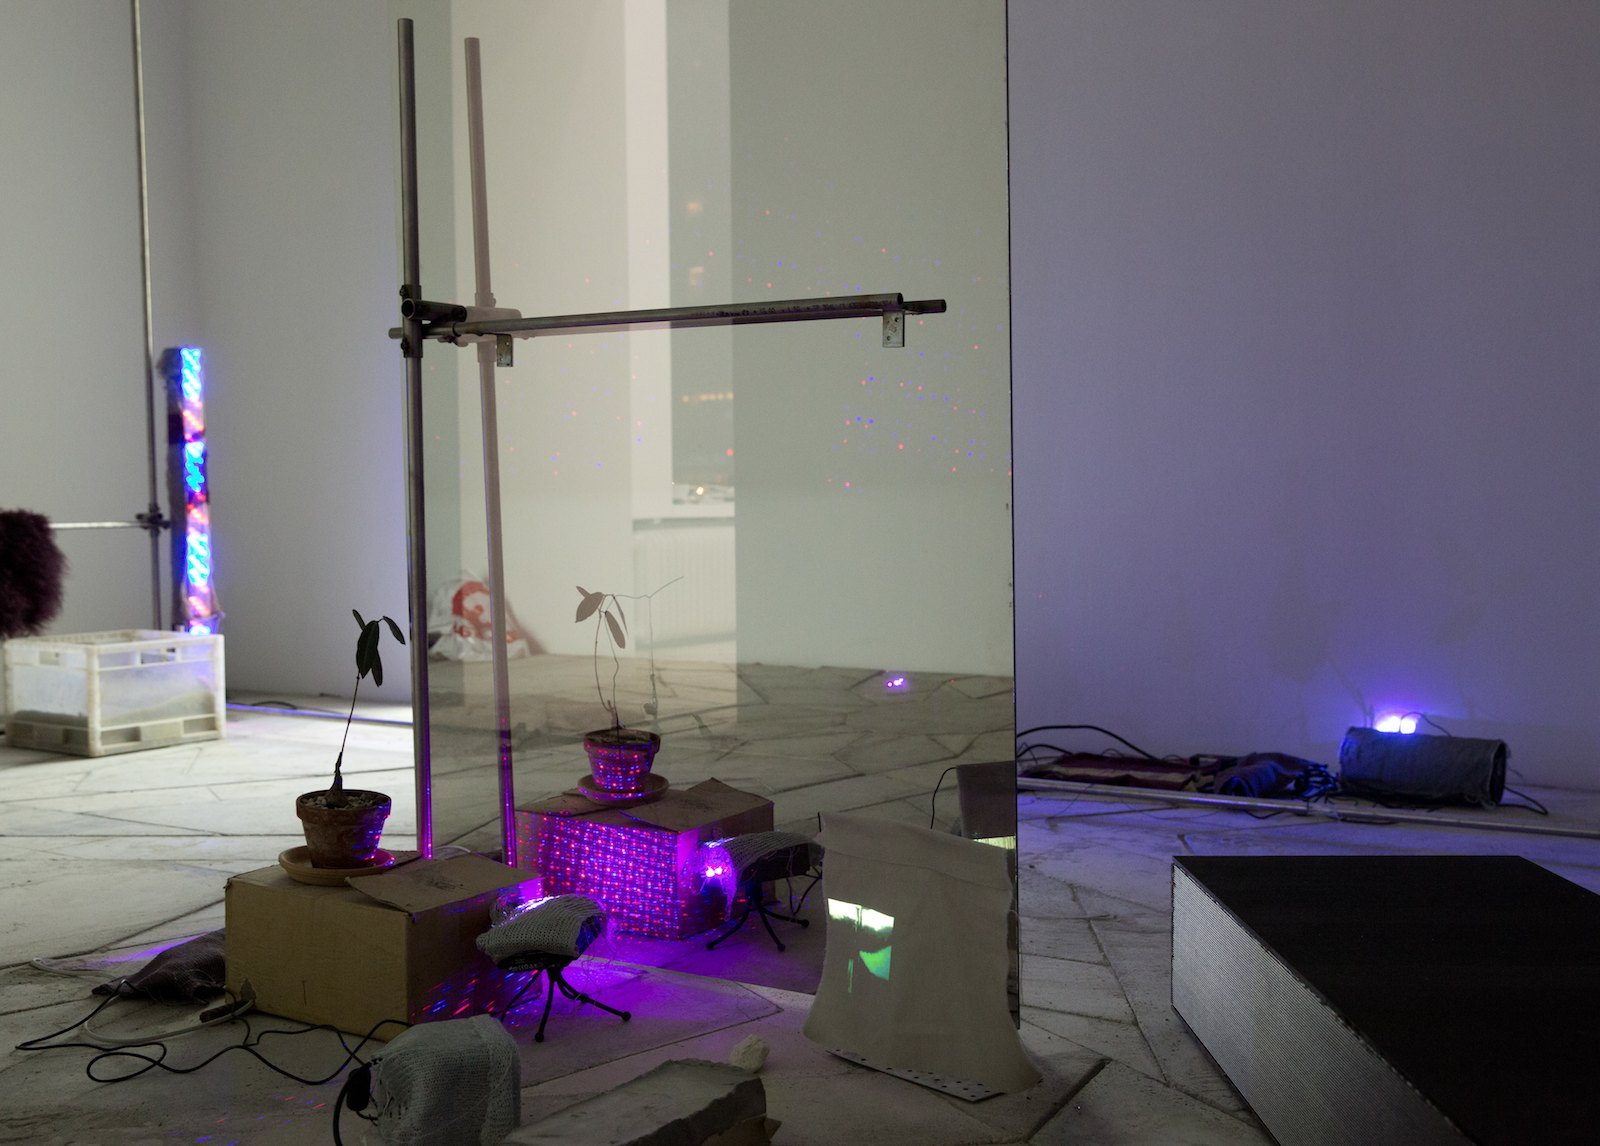 Endless promises, 2014, steel pipes, coloured lambskin, knitting, PC, projector, speakers, concrete, cardboard, ceramics, black marbrite glass, heating element, semi-transparent-mirror, shell, cigarette butt, LED-light, laser loop, video loop, crocheting, Petopentia Natalensis plants, plastic pearls, ruby in fuchsit. Dim. variable